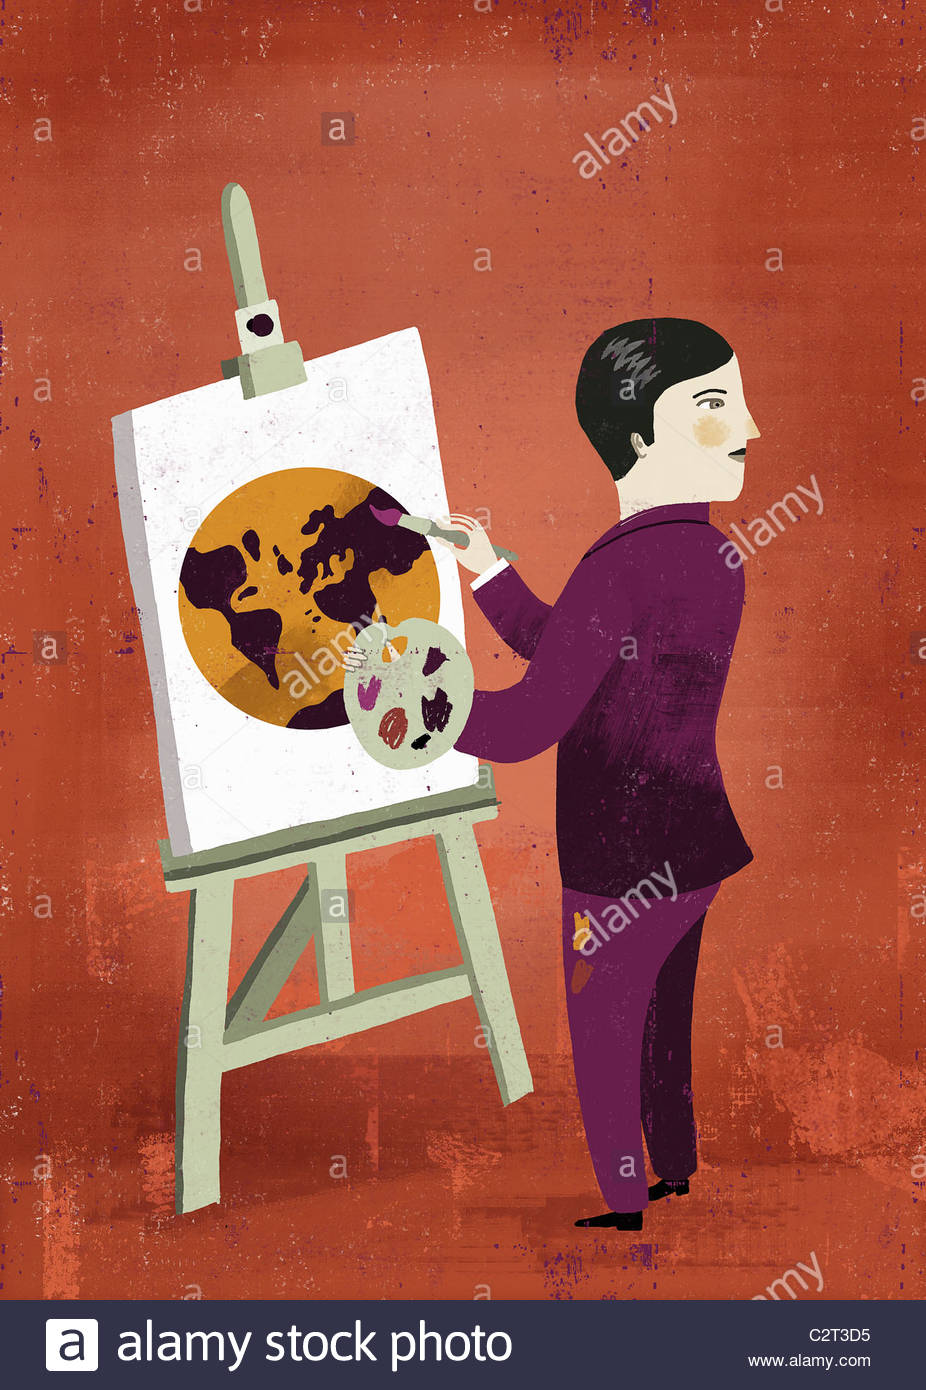 Man painting on easel globe Photo Stock